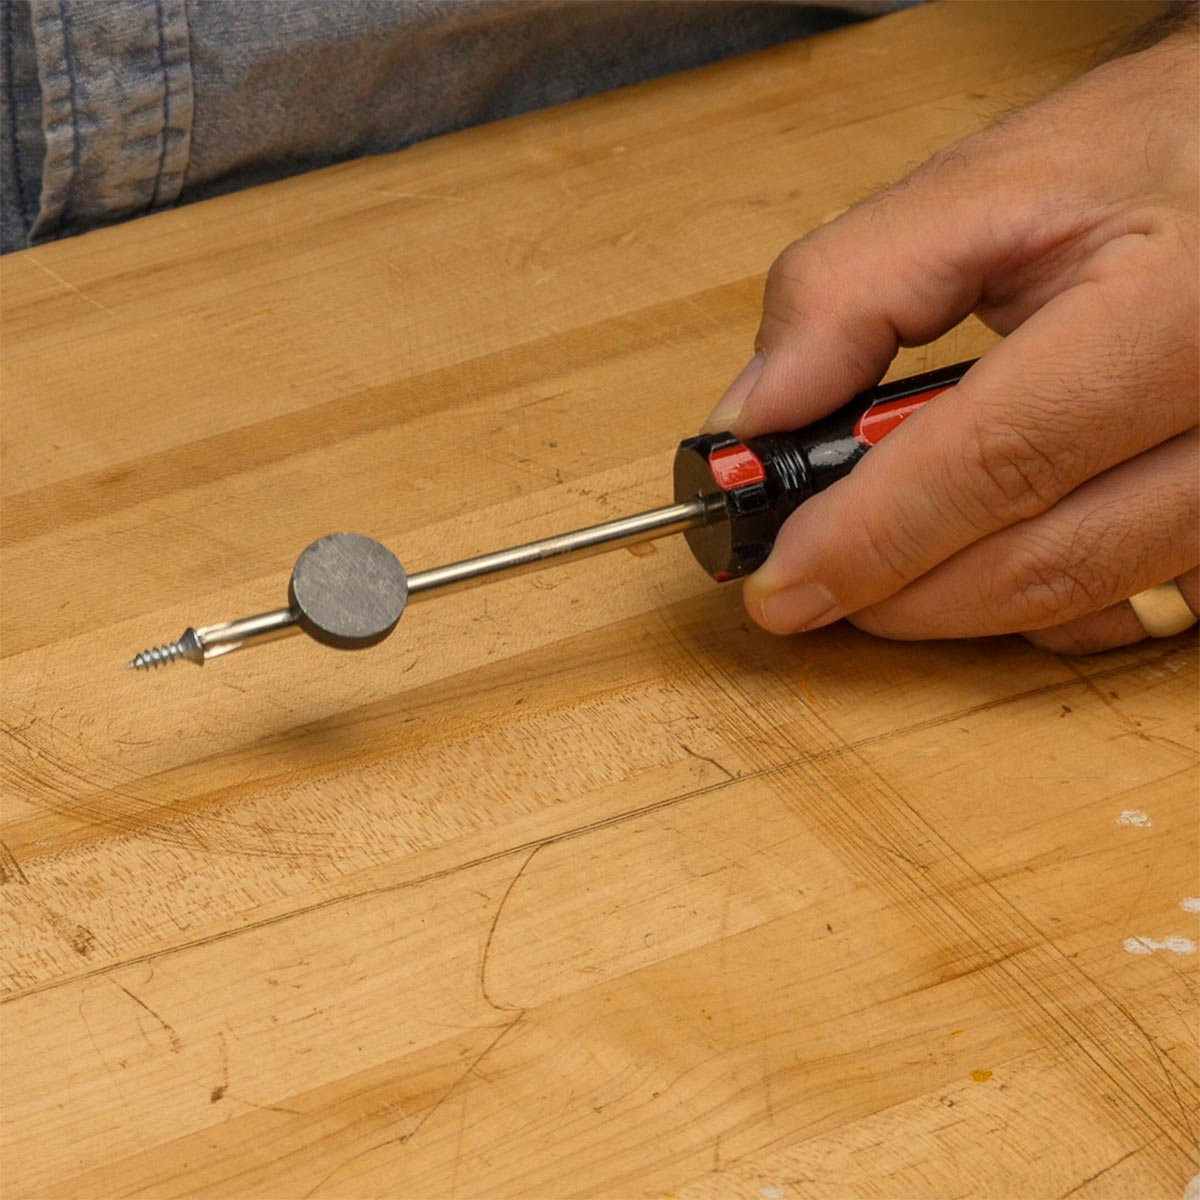 Jaws Hardwood Floor Cleaner Of 65 Cool tool Hacks Handy Hints From the Family Handyman with How to Magnetize A Screwdriver